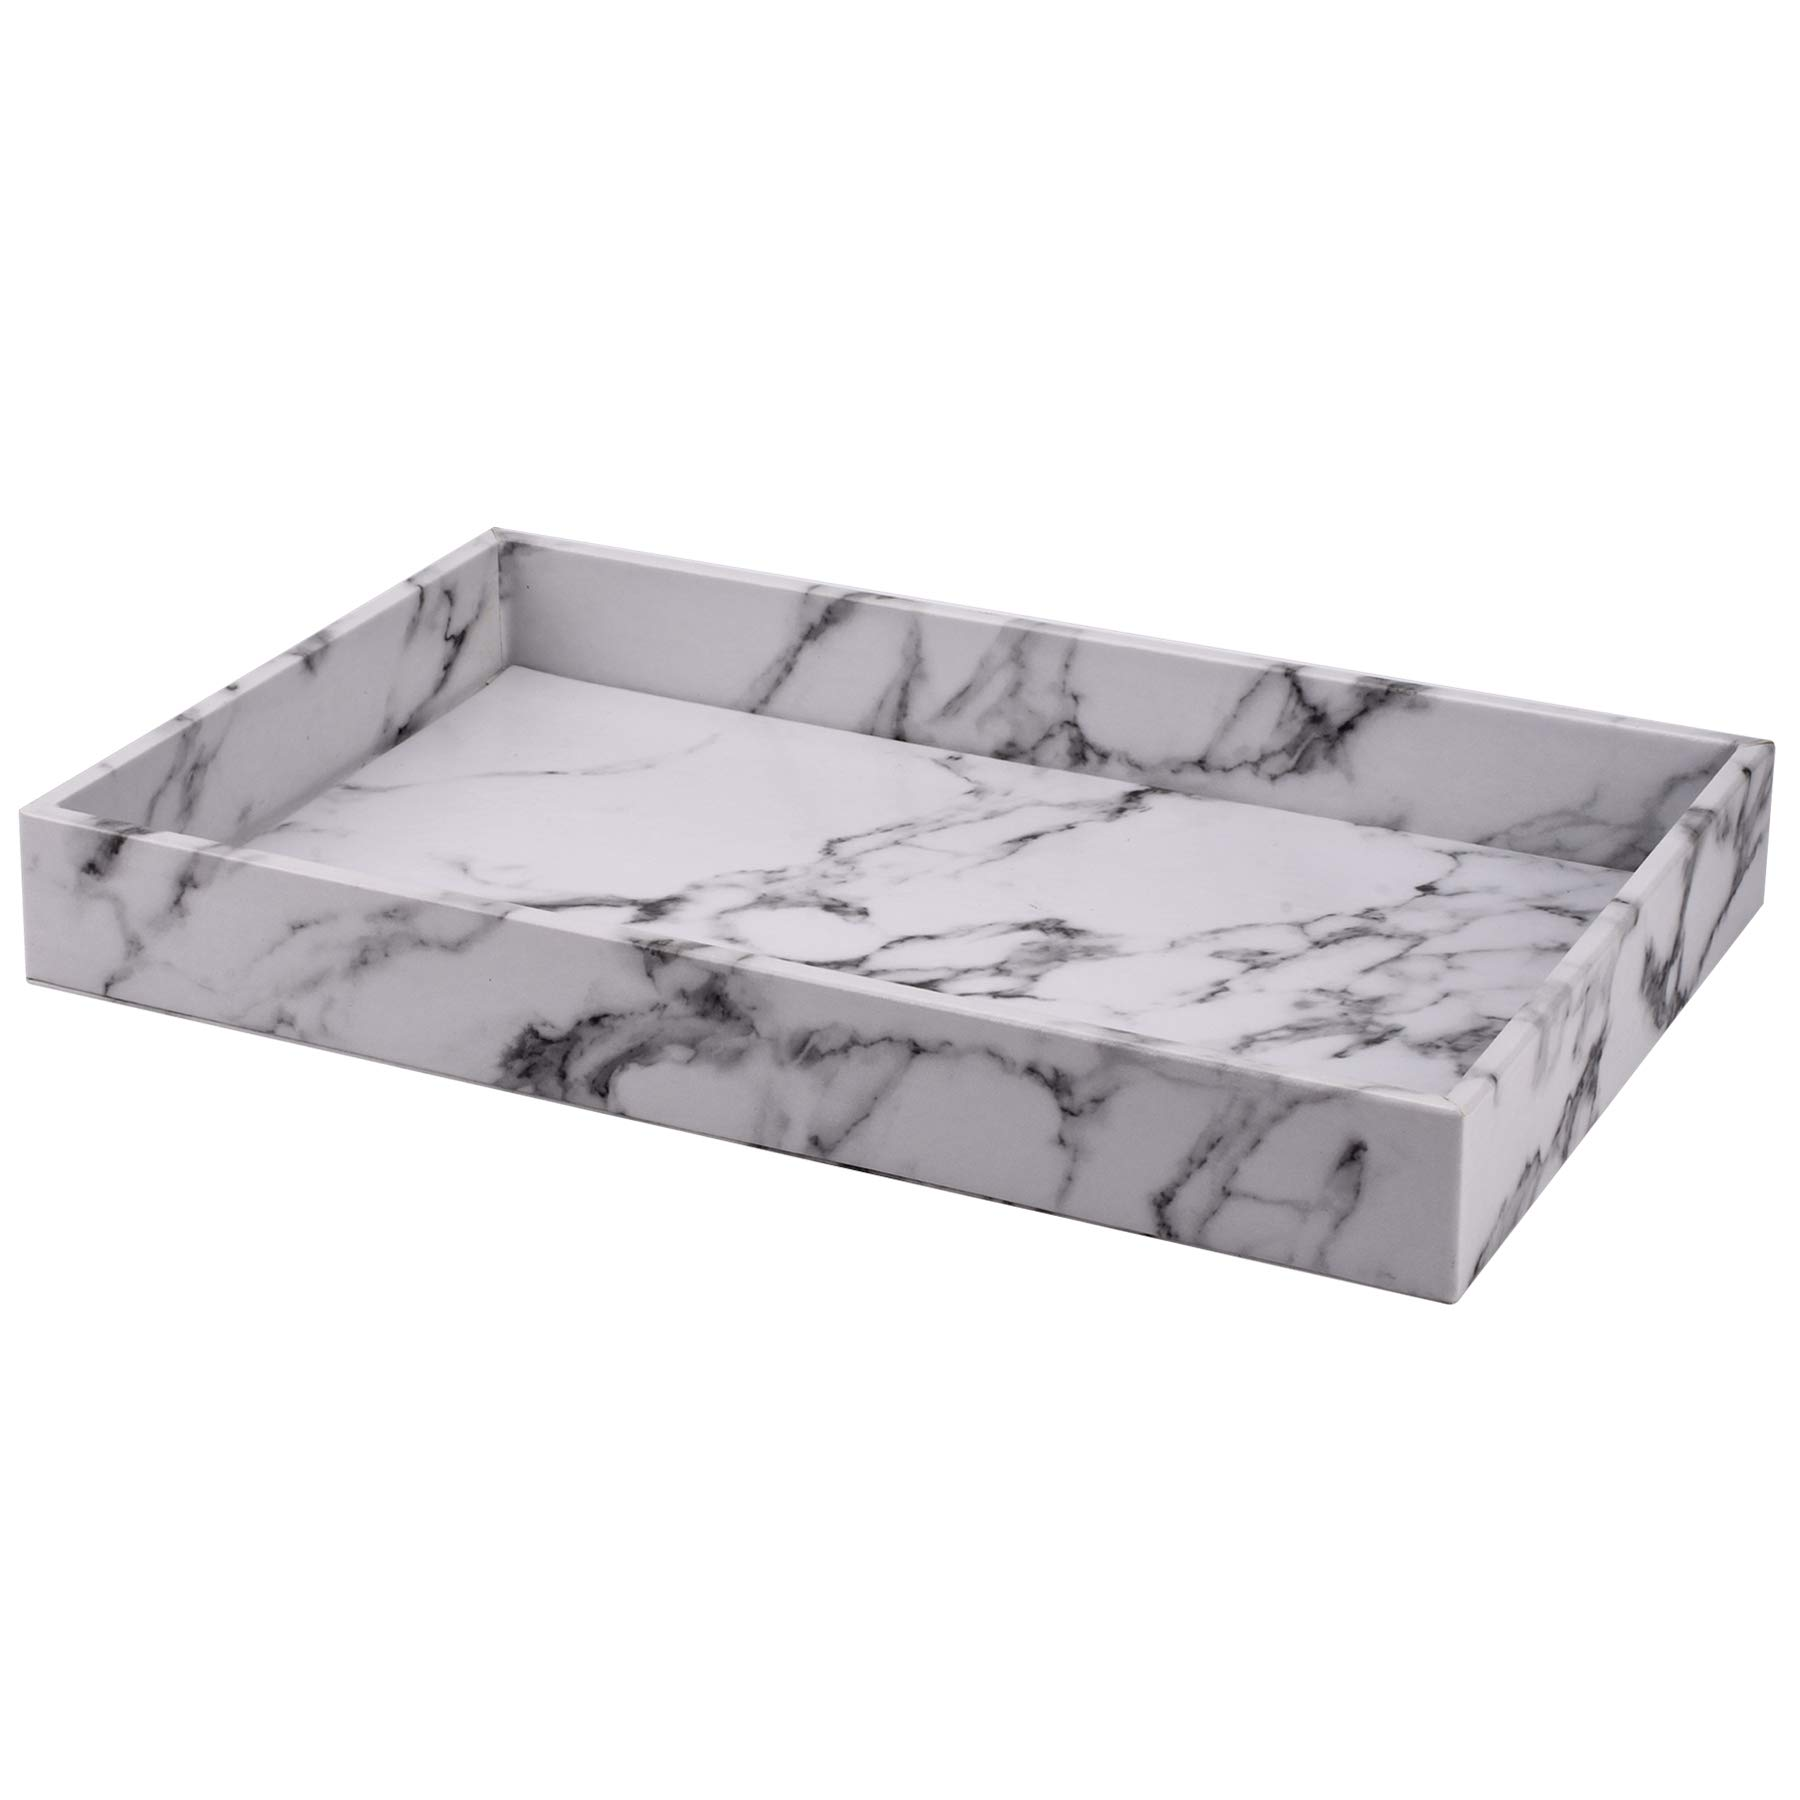 Decor Trends Faux Marble Leather Bath Bathroom Long Vanity Decorative Tray Display Tray Organizer for Perfume Dresser Cosmetics Nightstand by Decor Trends